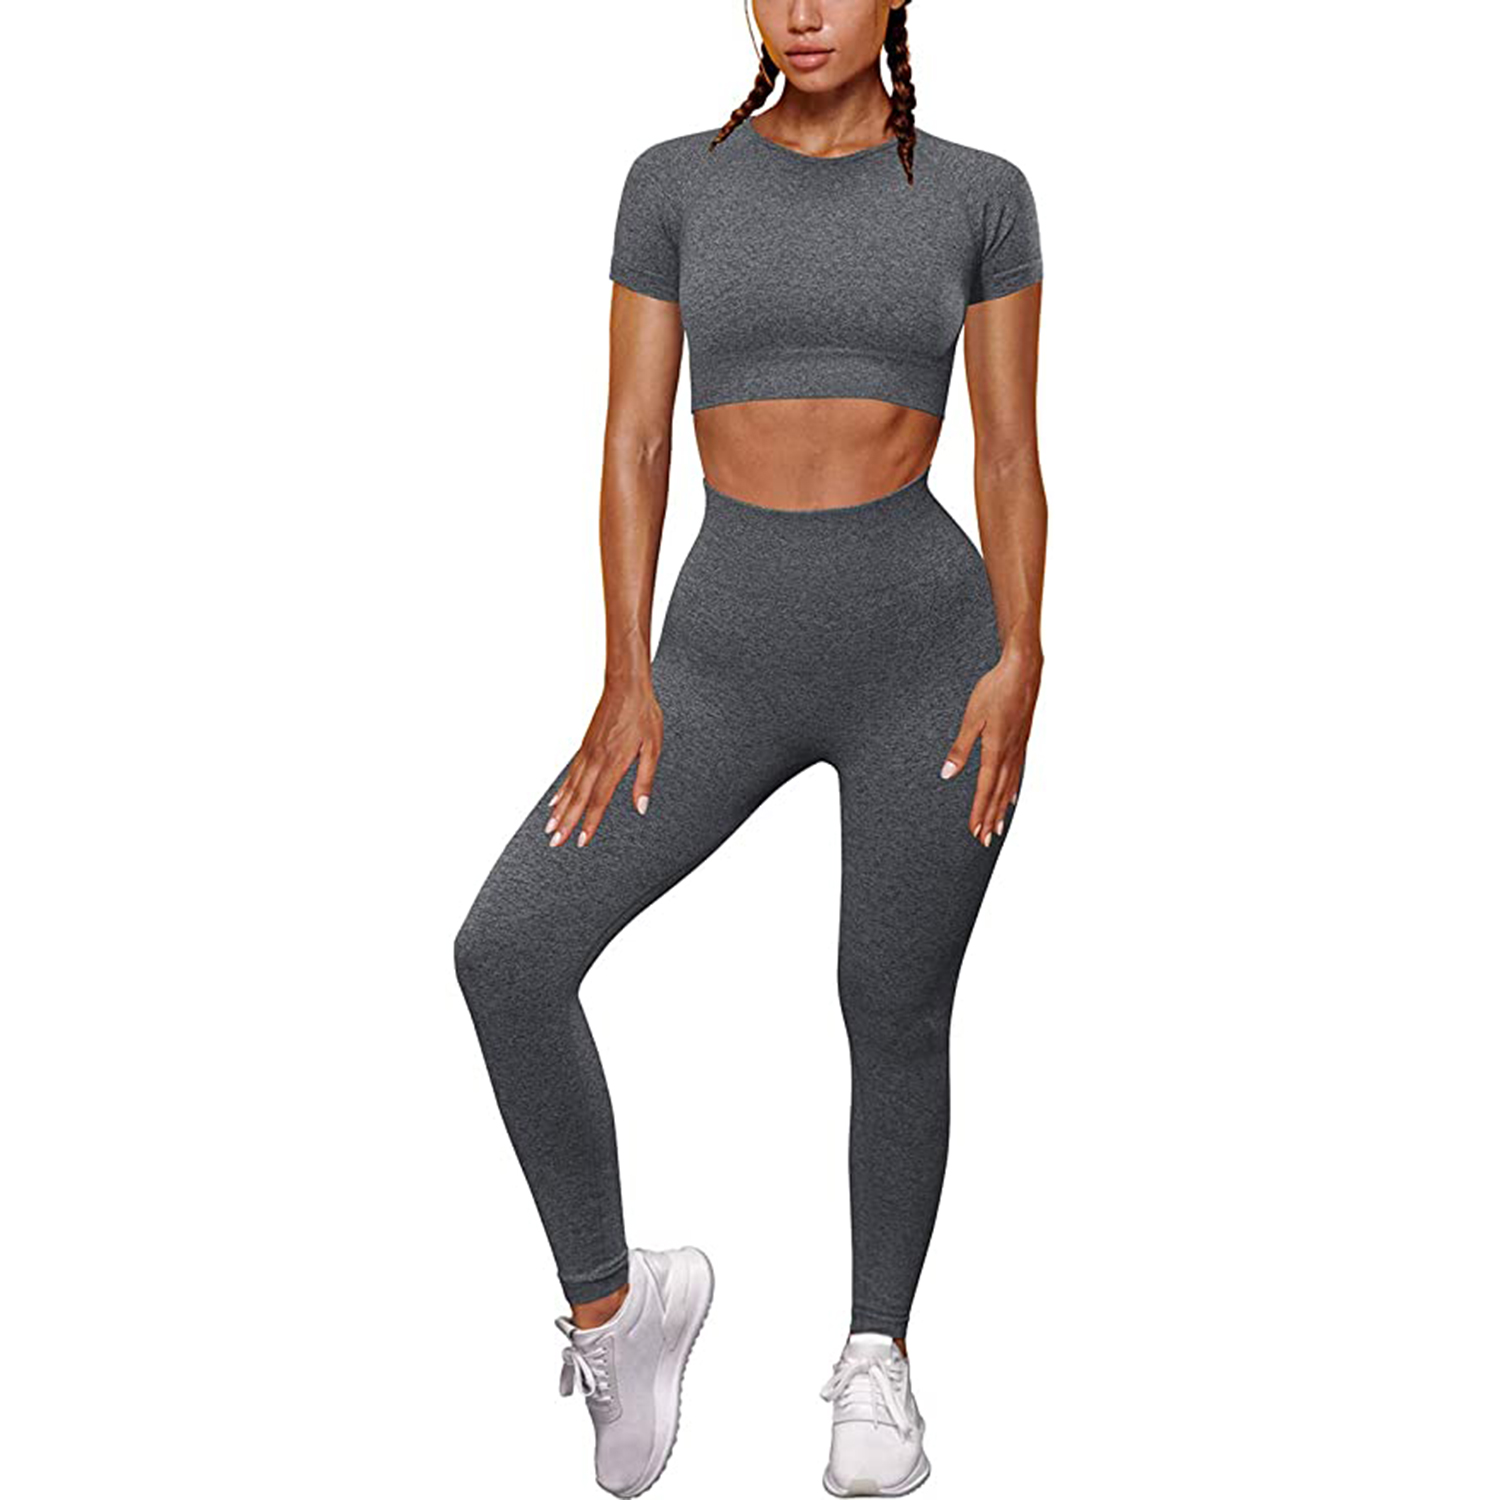 OYS Womens Yoga 2 Pieces Workout Outfits Seamless High Waist Leggings Sports Crop Top